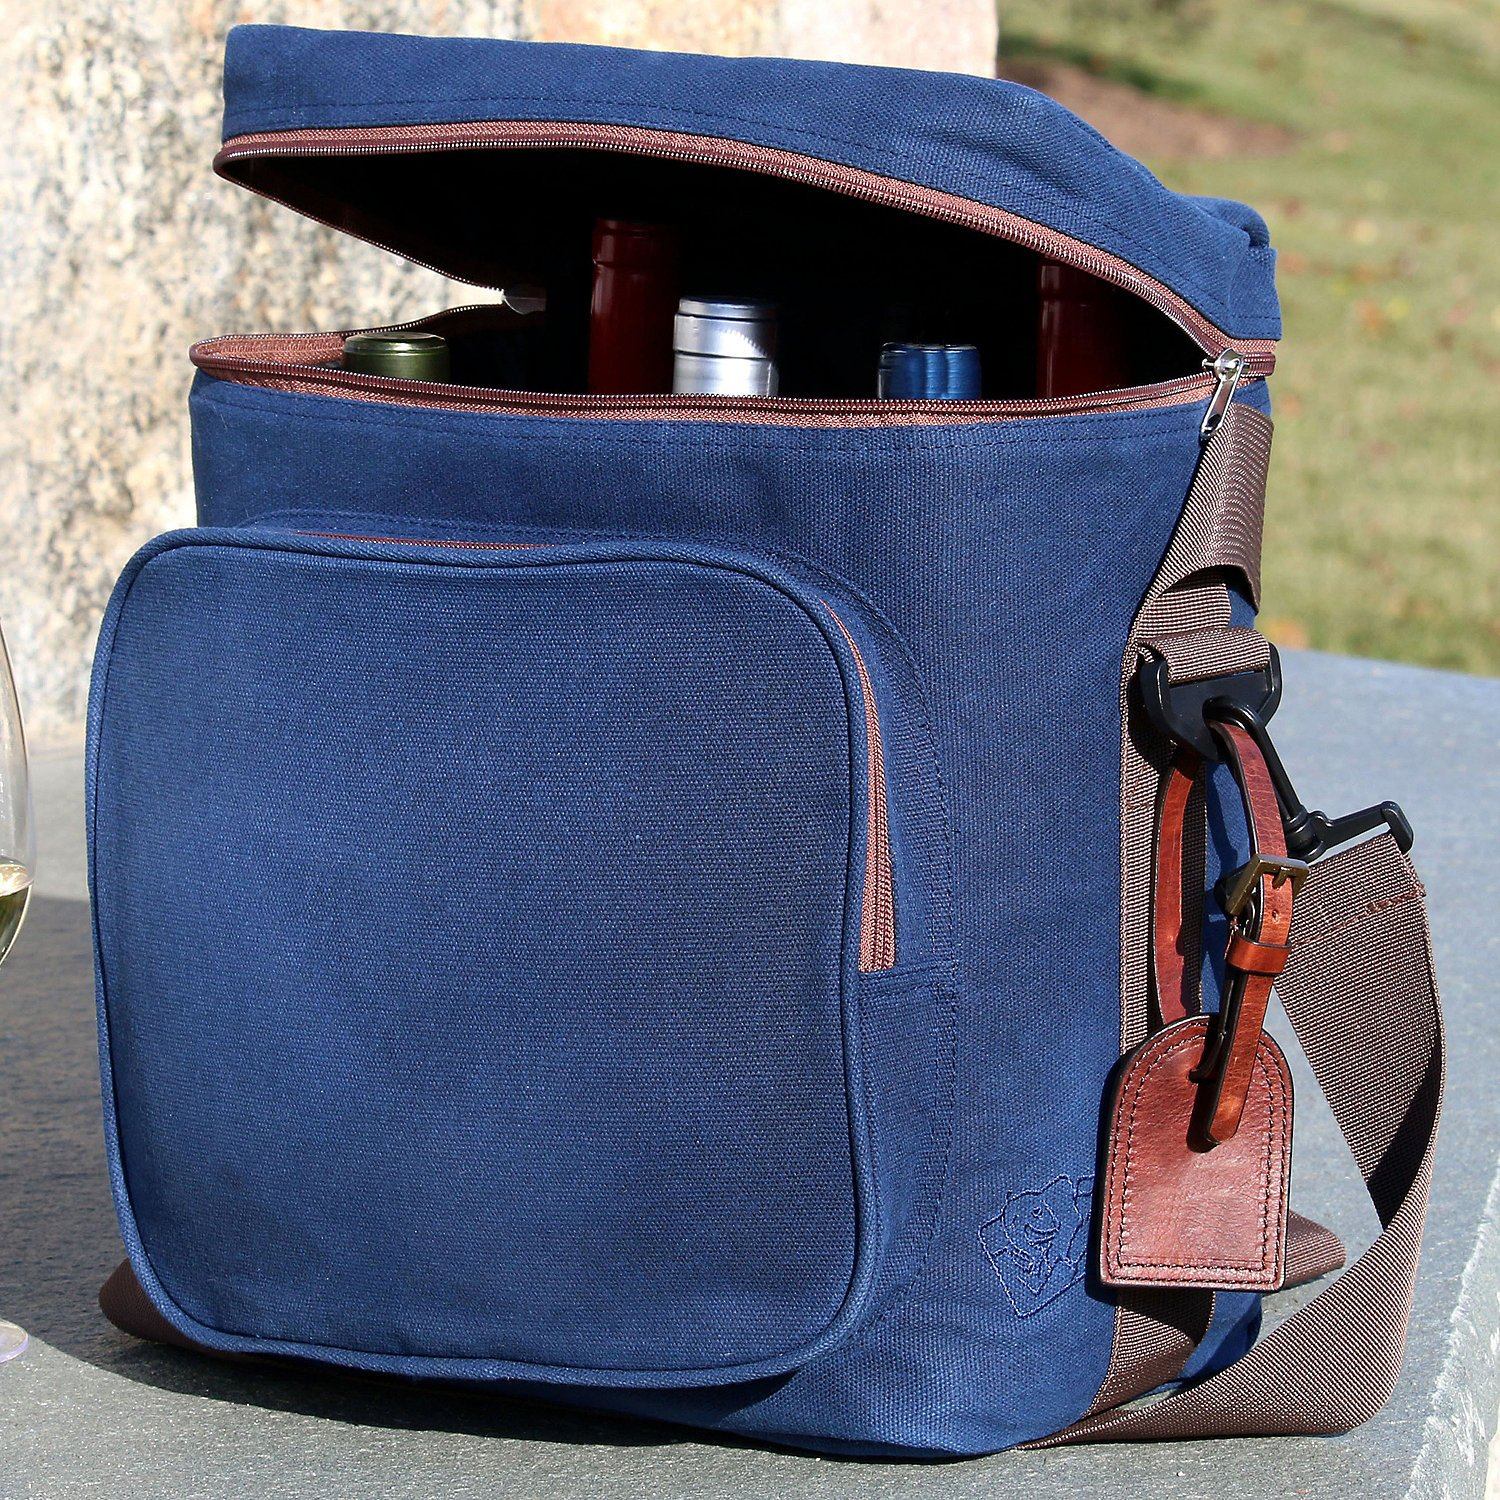 Wine Enthusiast 6-Bottle Wine Bag - Waxed Canvas Weekend Wine Carrier, Blue